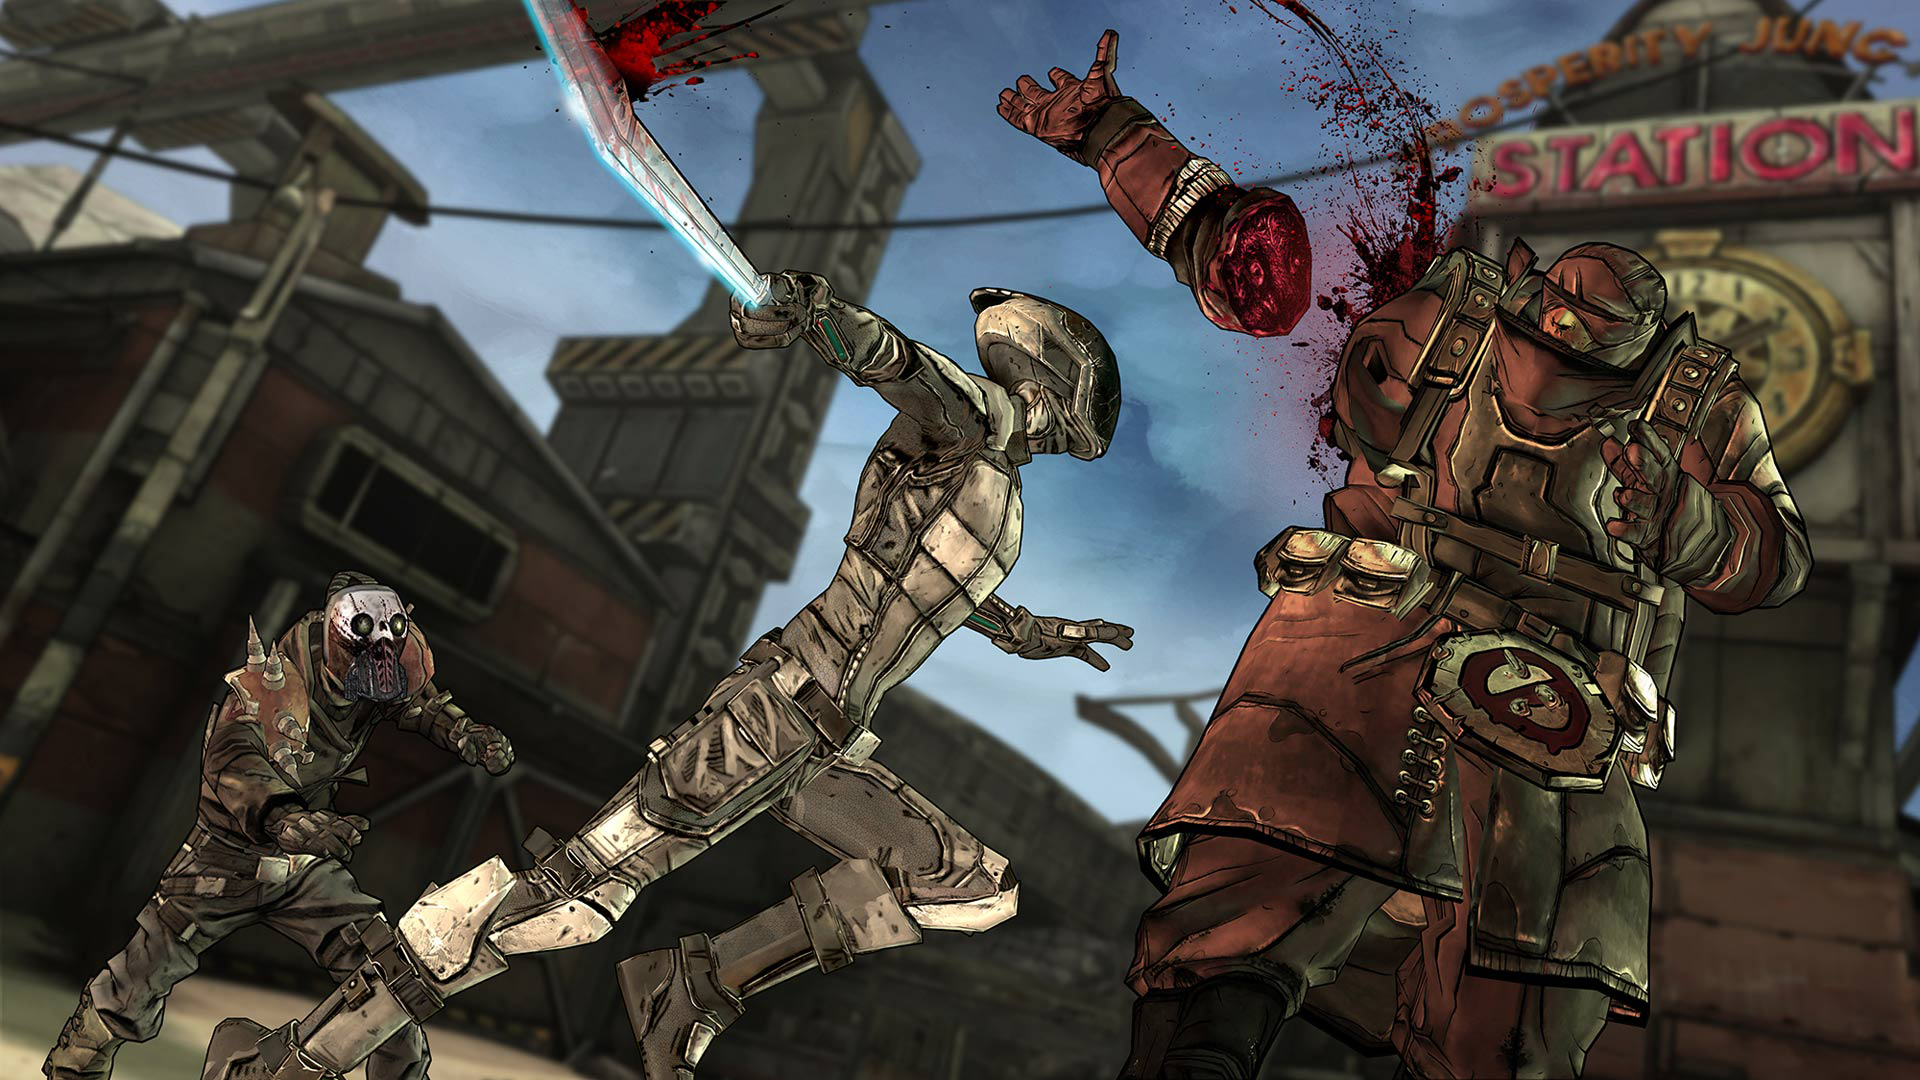 Tales from the Borderlands screenshot #15